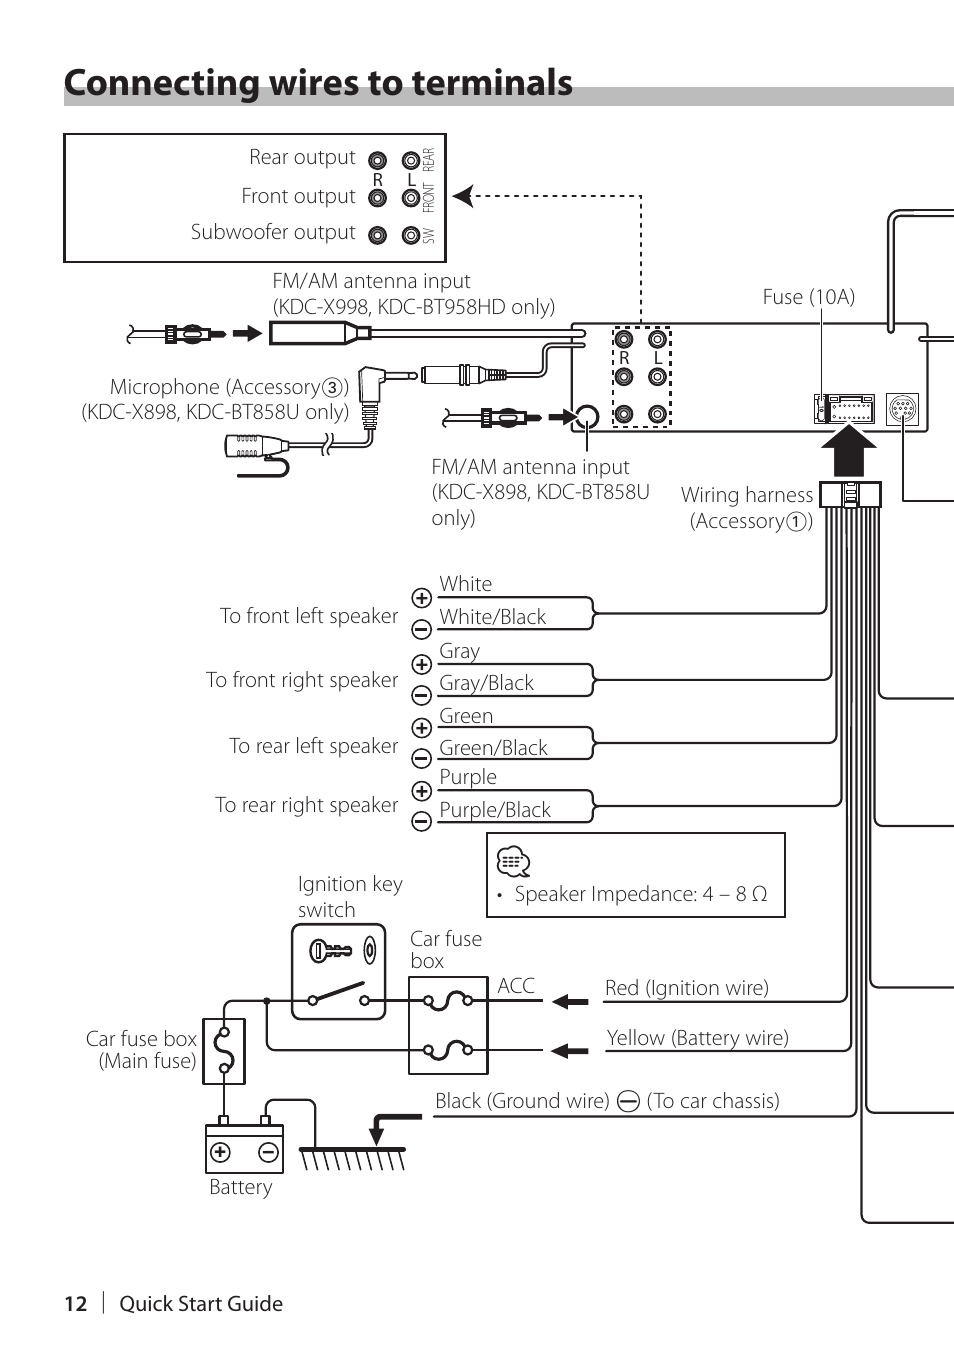 hd wallpapers wiring diagram for kenwood ez500 walldesign2android gq kenwood radio manuals get free high quality [ 954 x 1345 Pixel ]